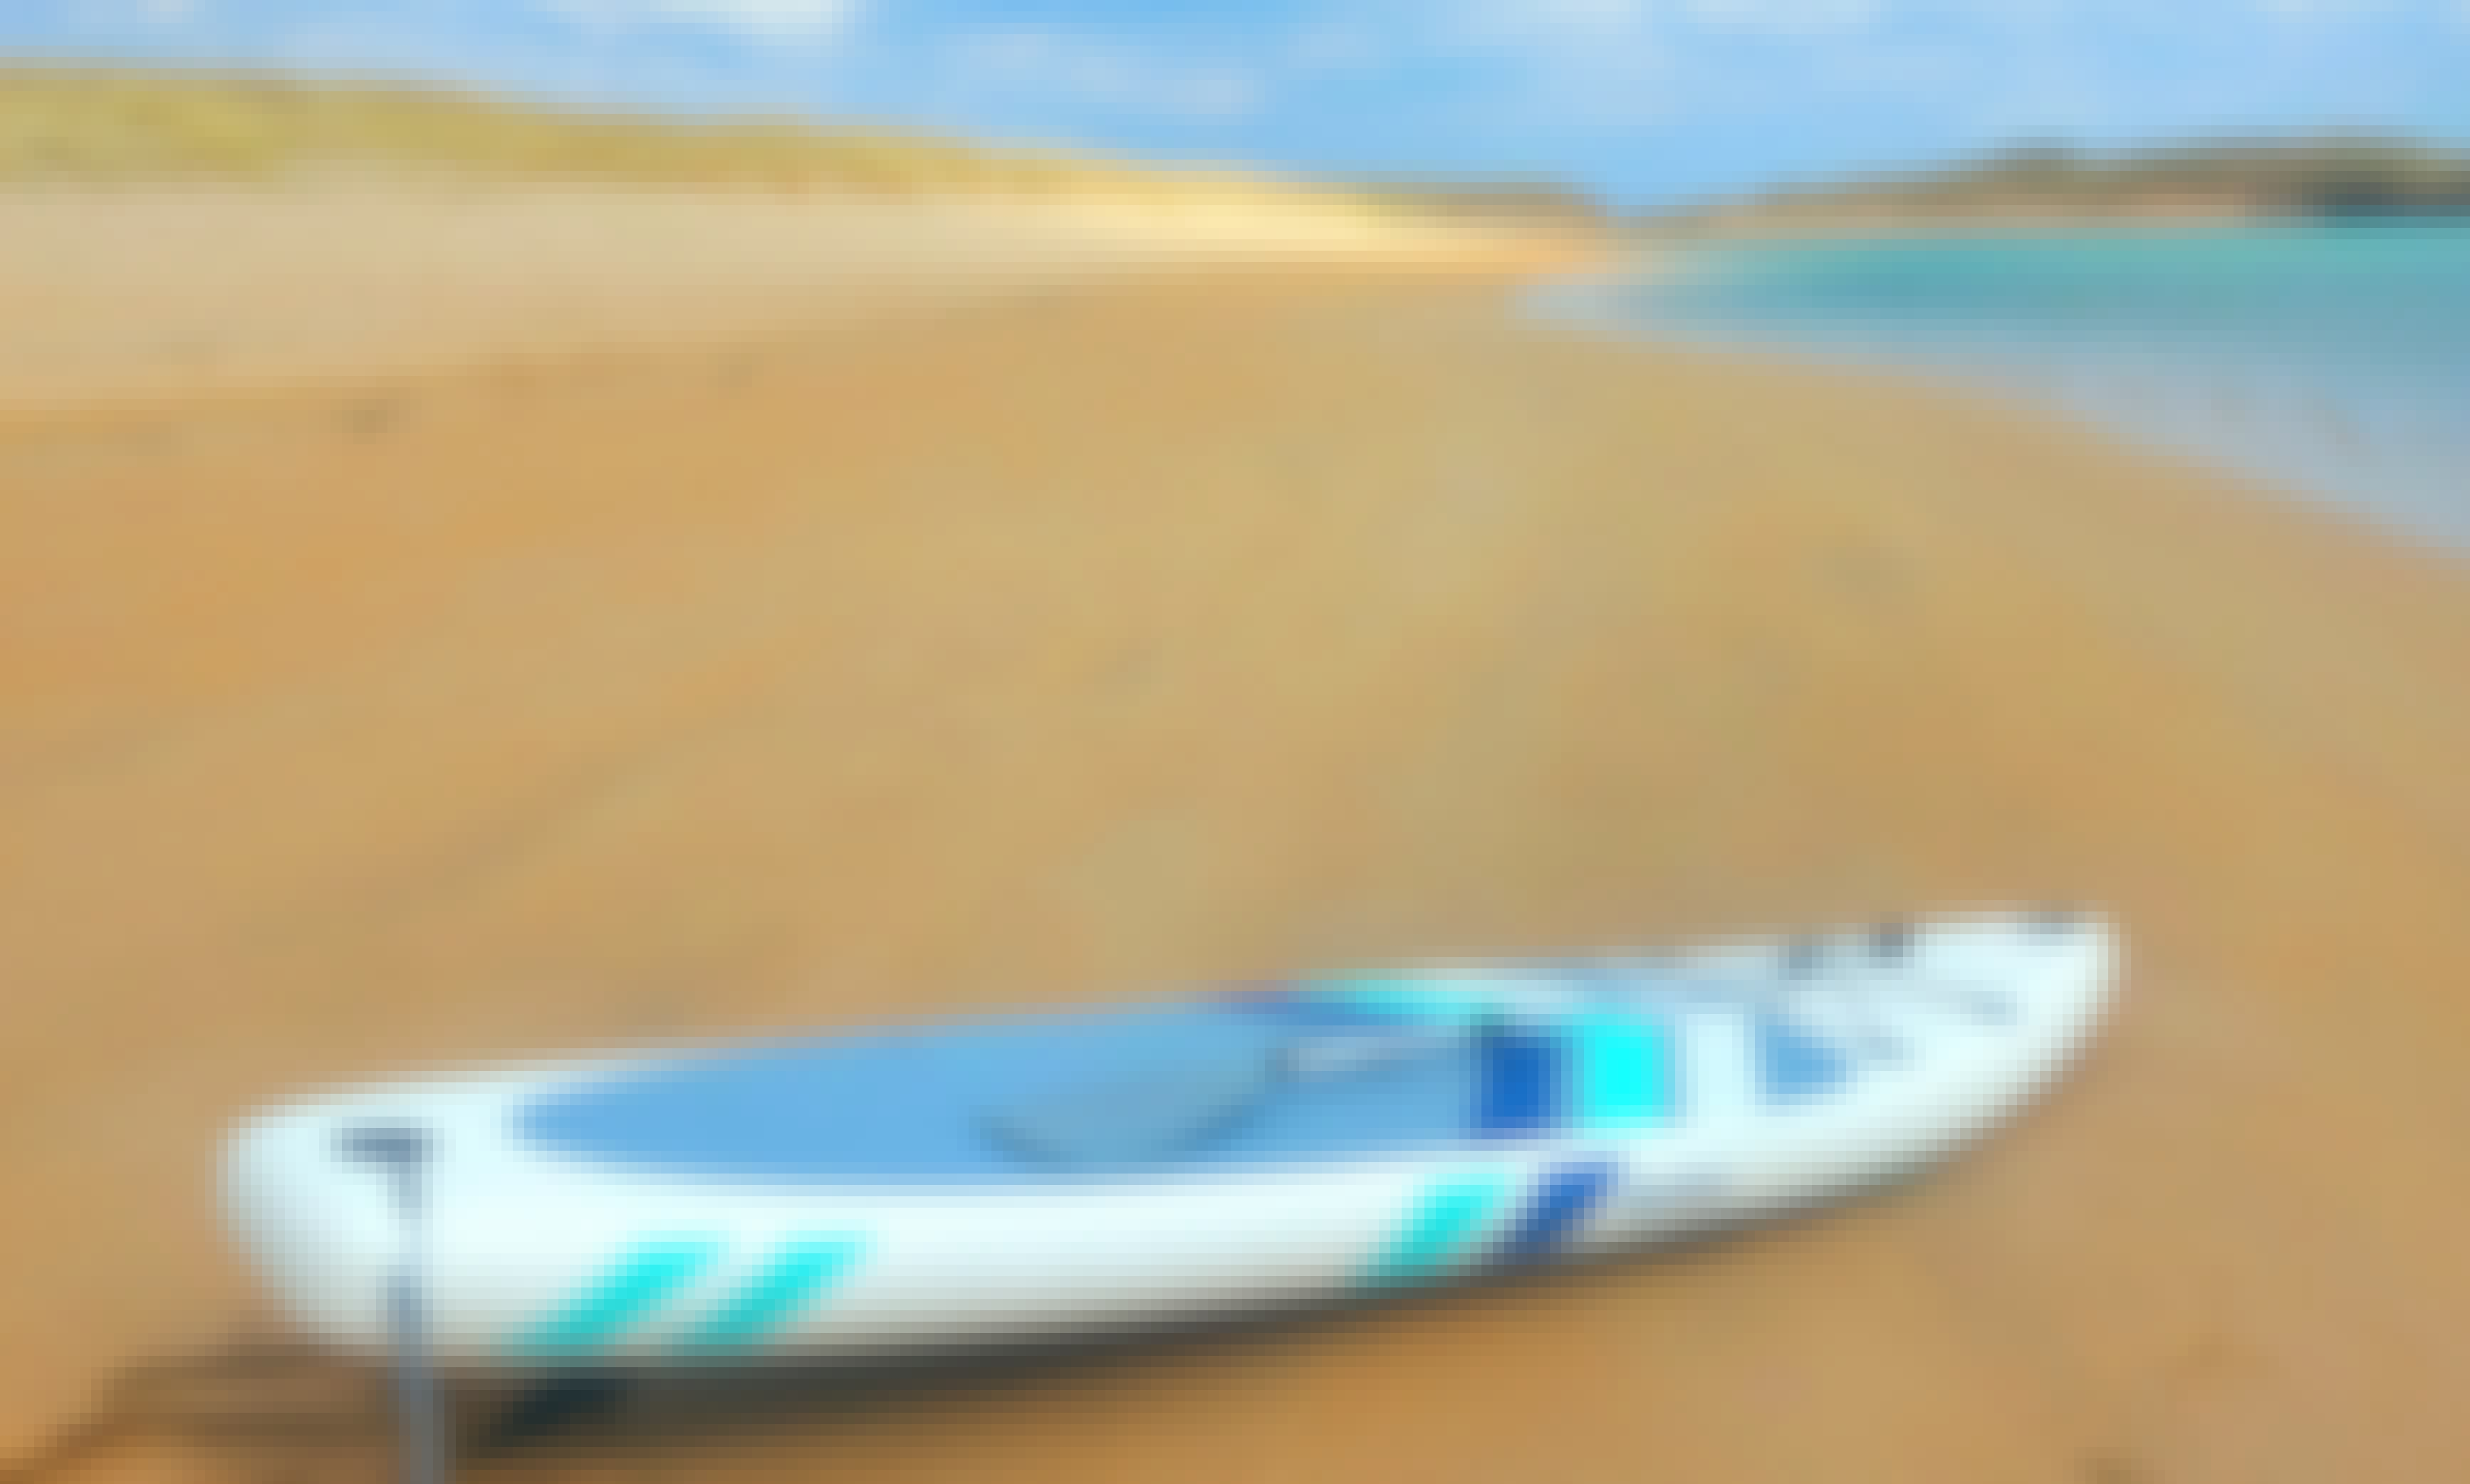 Myway Stand Up Paddle Board Rental in County Donegal